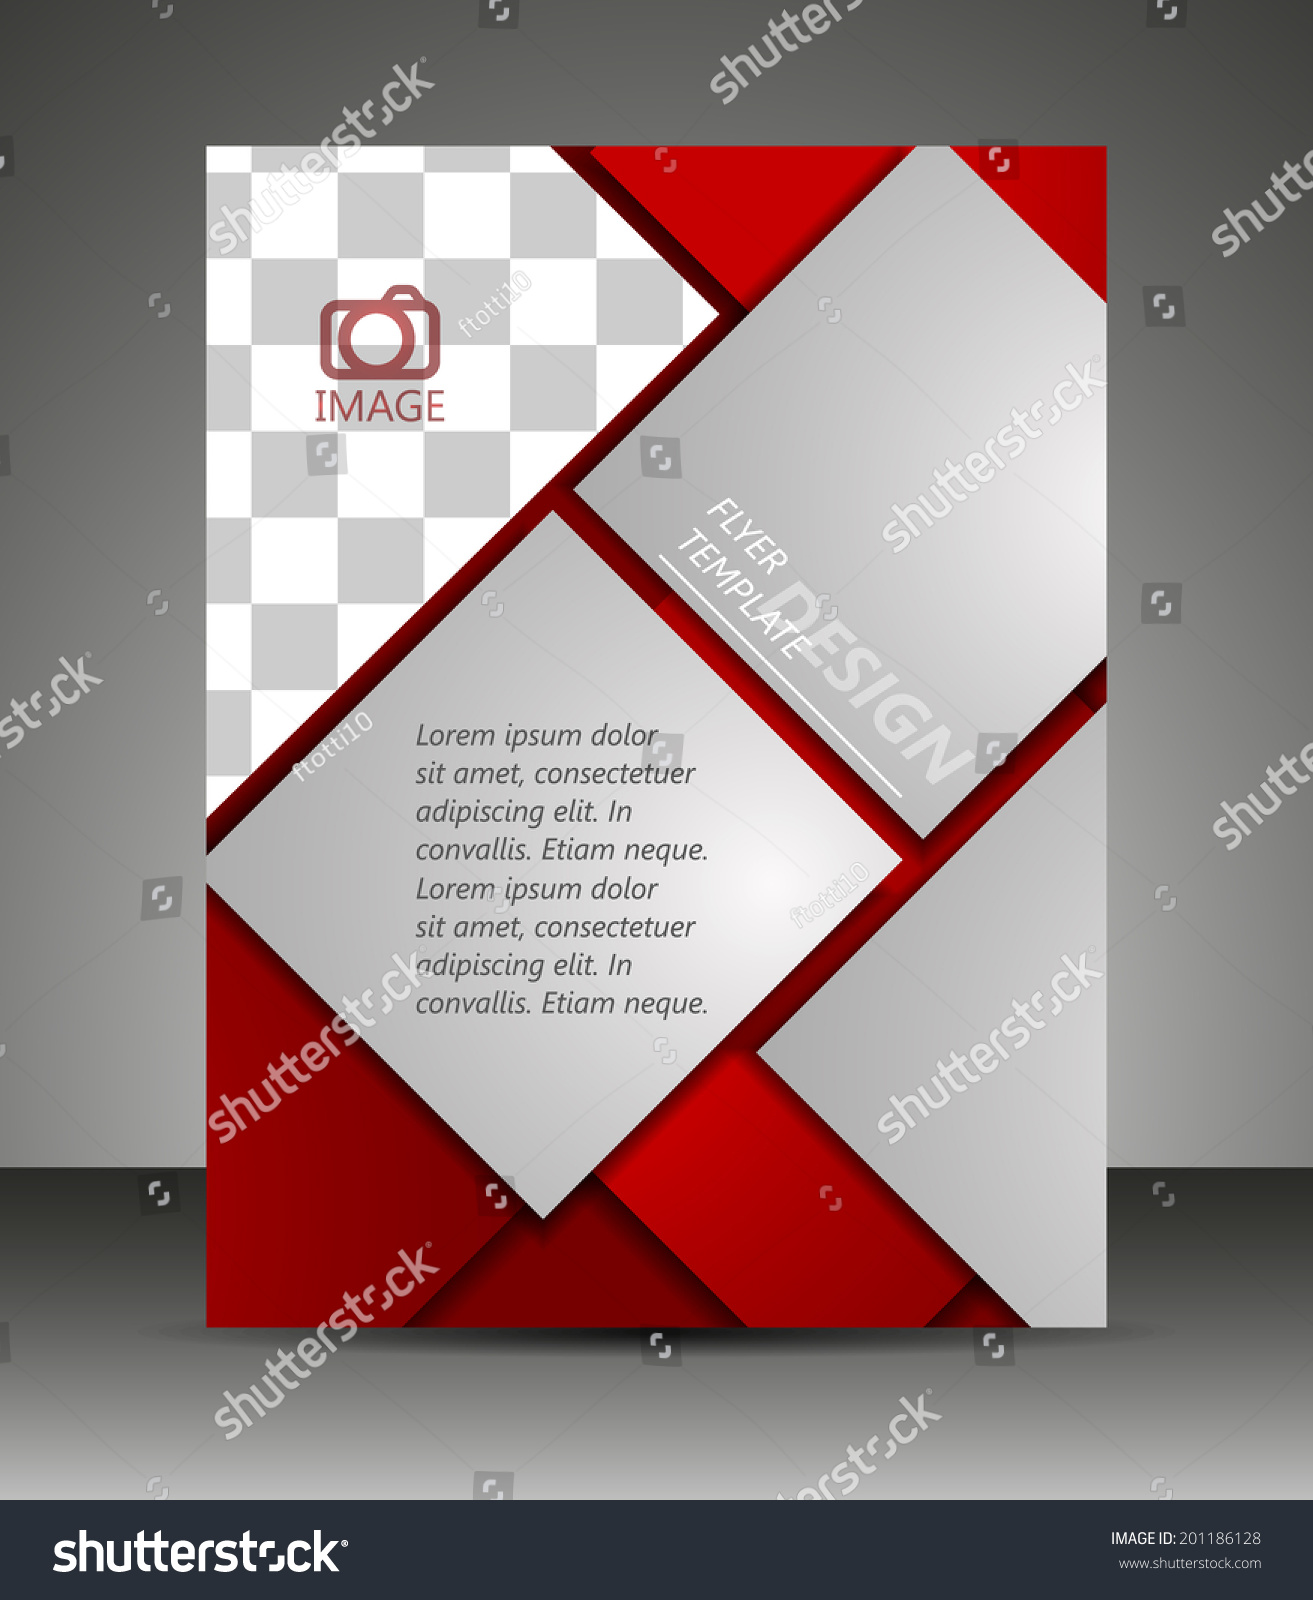 Professional Business Flyer Template Corporate Bannerdesign Stock ...